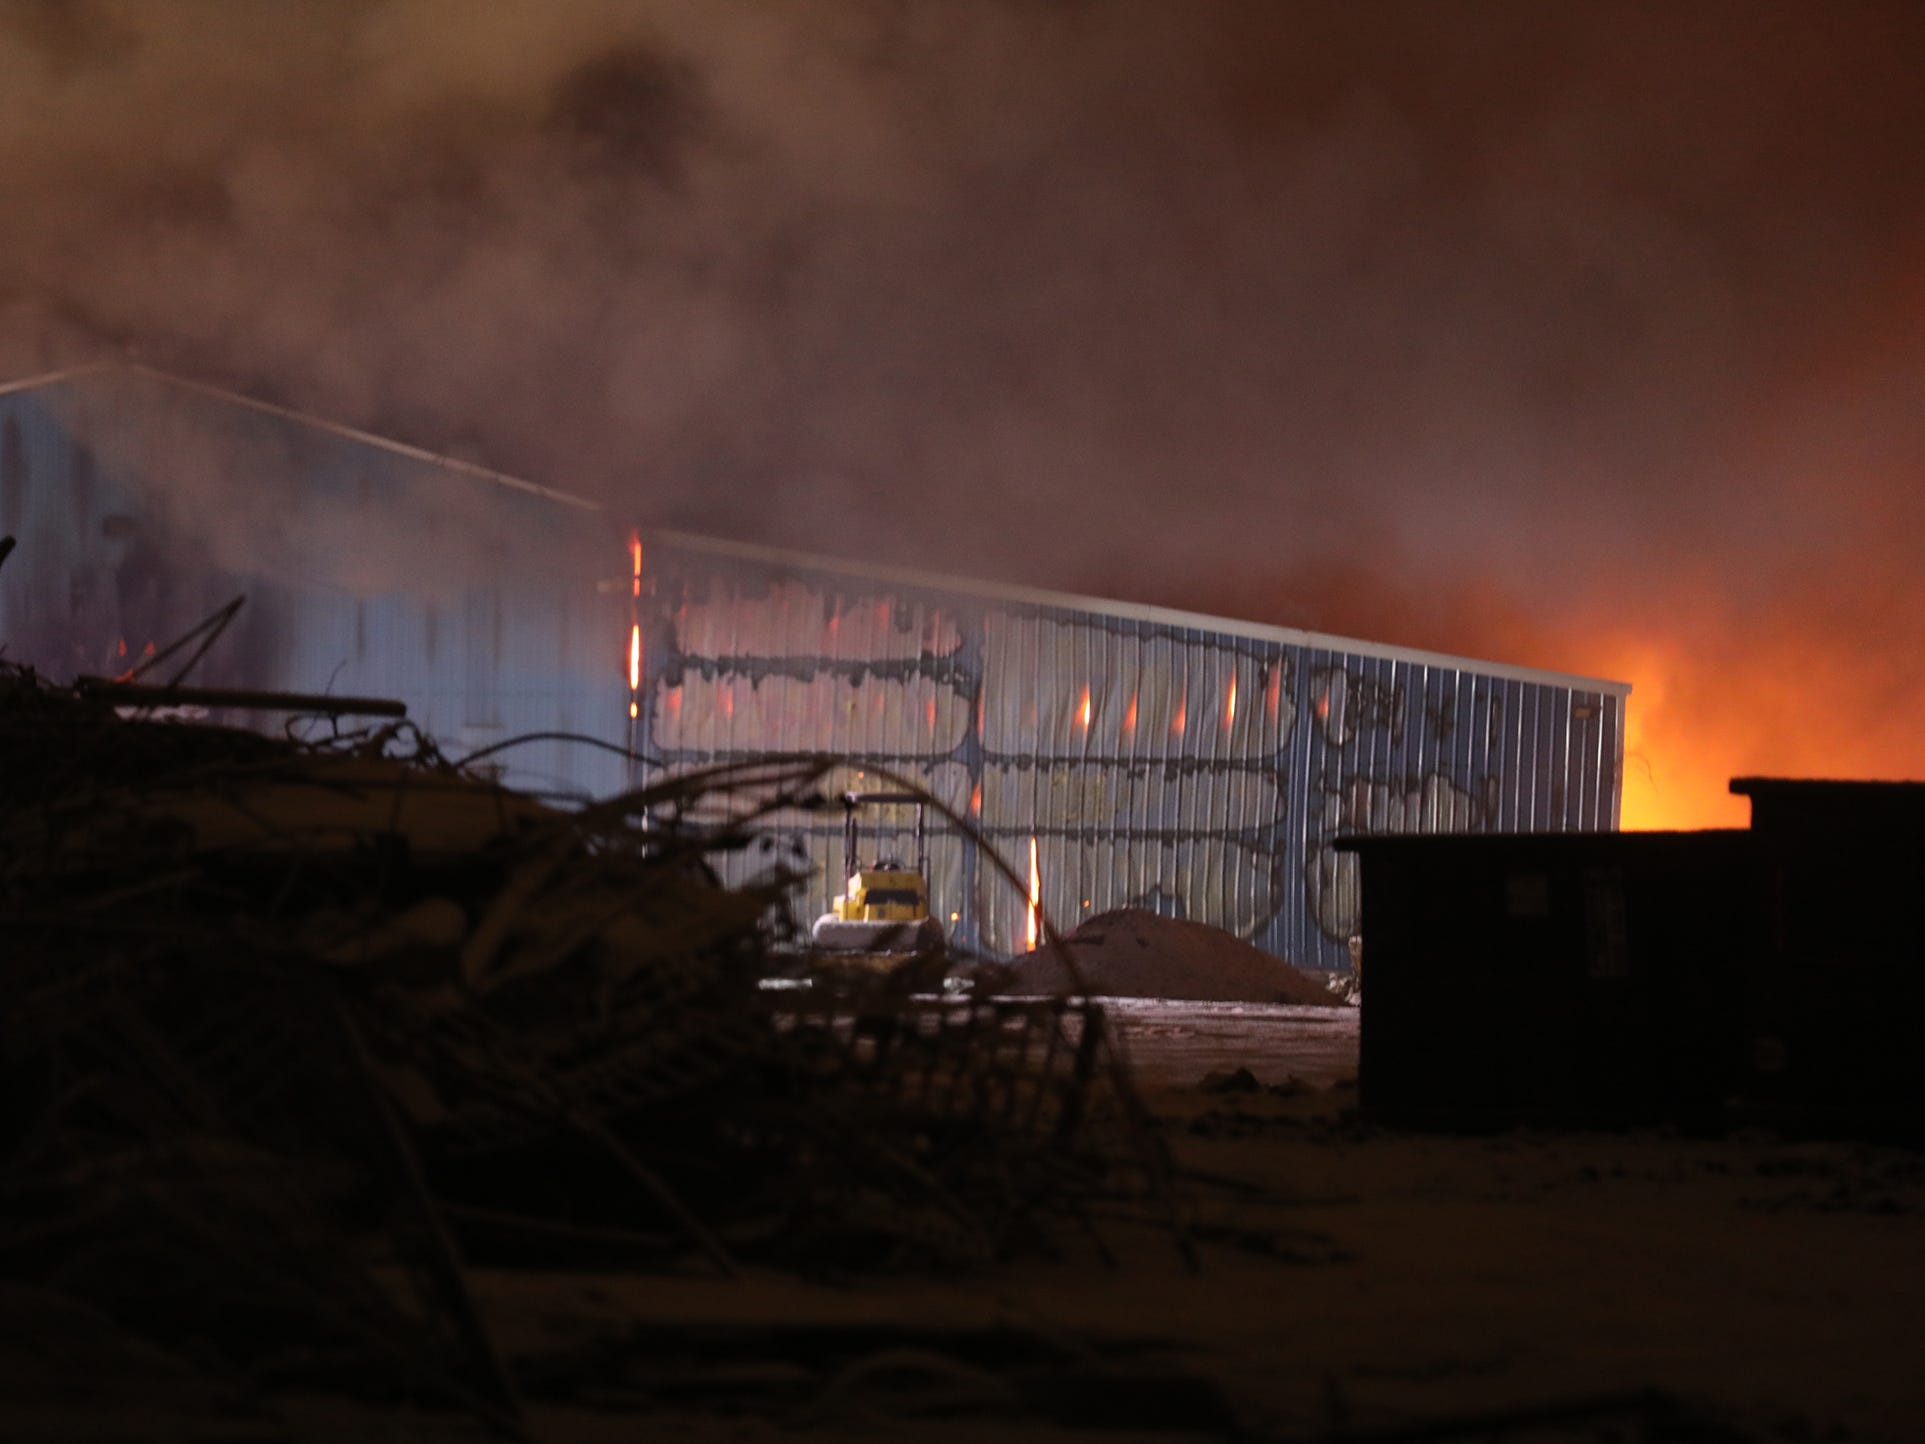 Before firefighters opened up the building the glow from the fire could be seen from a block away.